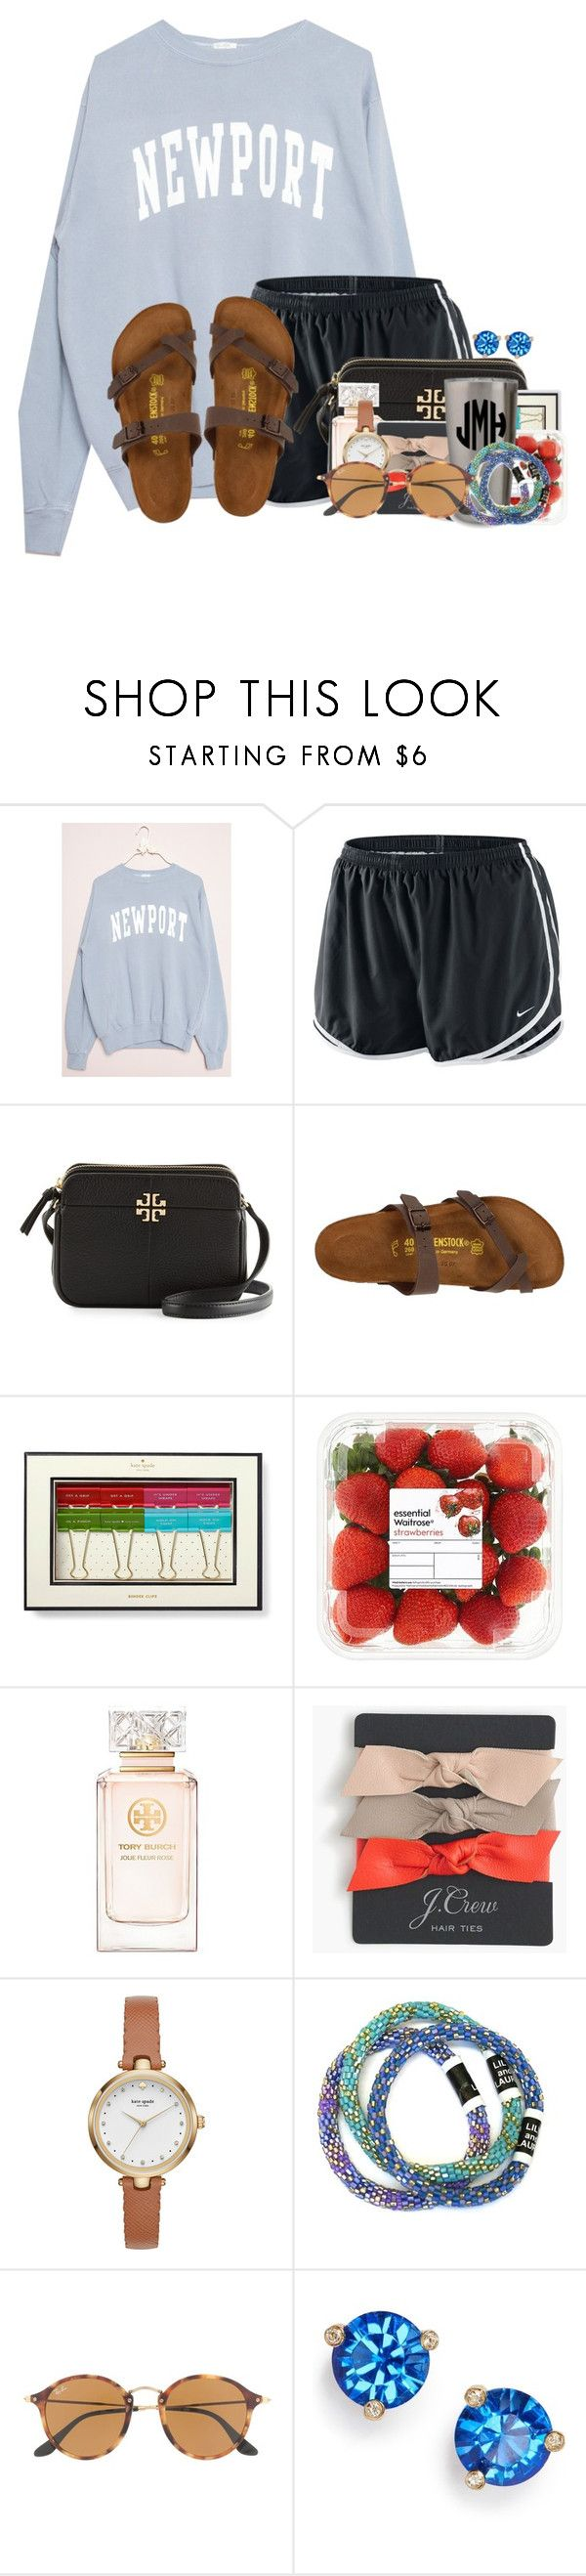 """""""Today was not one of my best days"""" by flroasburn ❤ liked on Polyvore featuring NIKE, Tory Burch, Birkenstock, Kate Spade, J.Crew and Ray-Ban"""